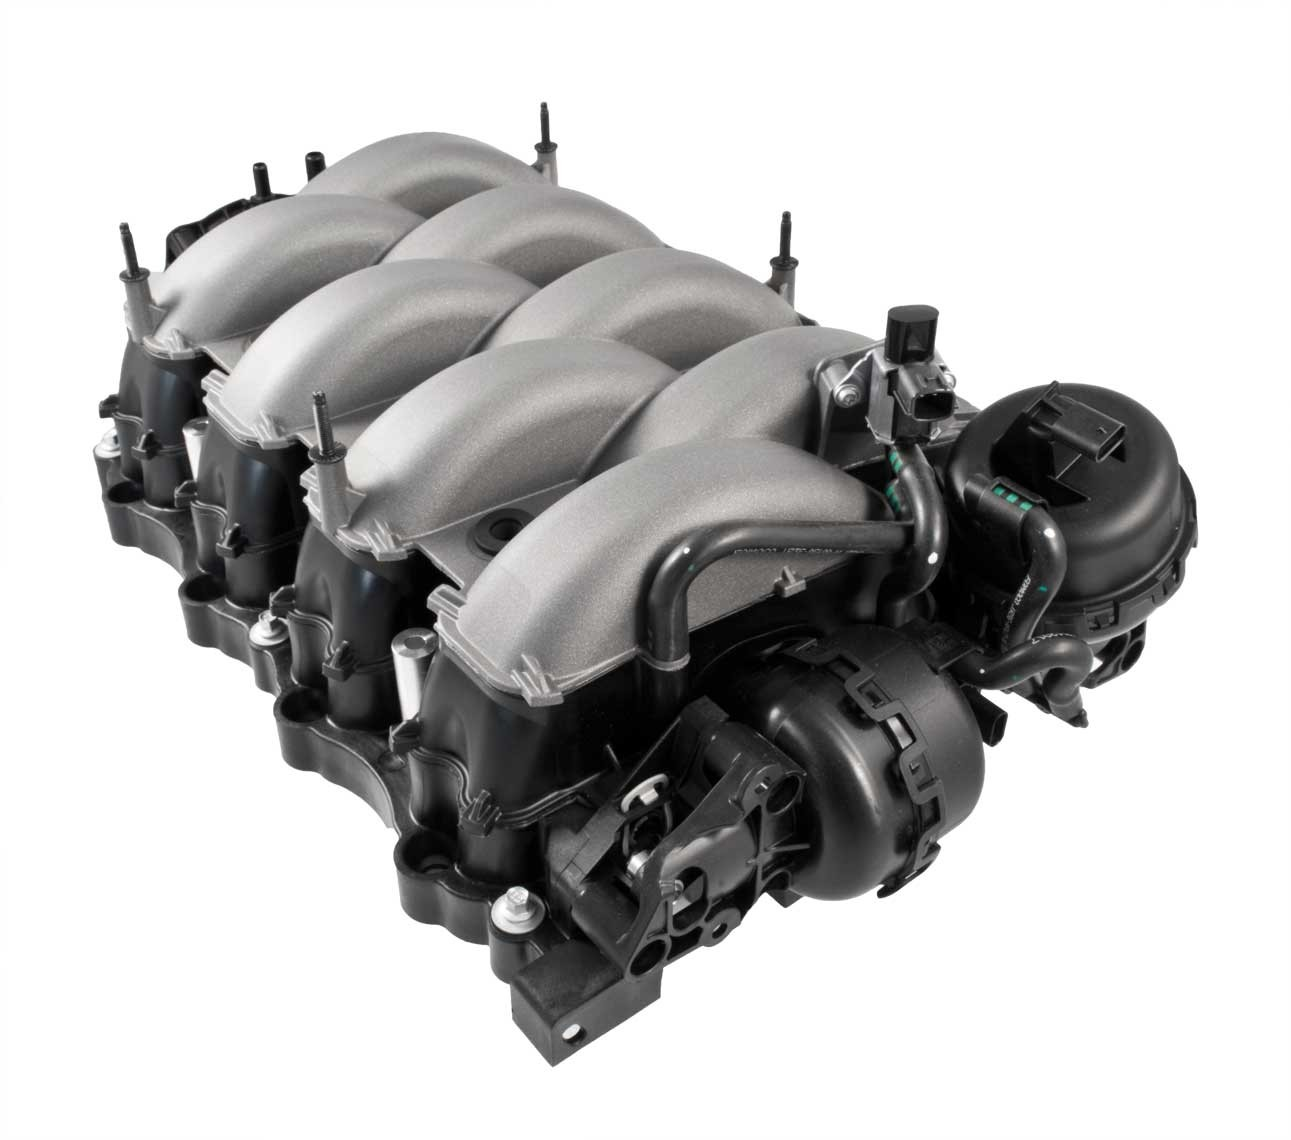 Ford Gt 2017 Price >> 2018-2019 Mustang GT OEM Genuine Ford JR3Z-9424-A Engine ...